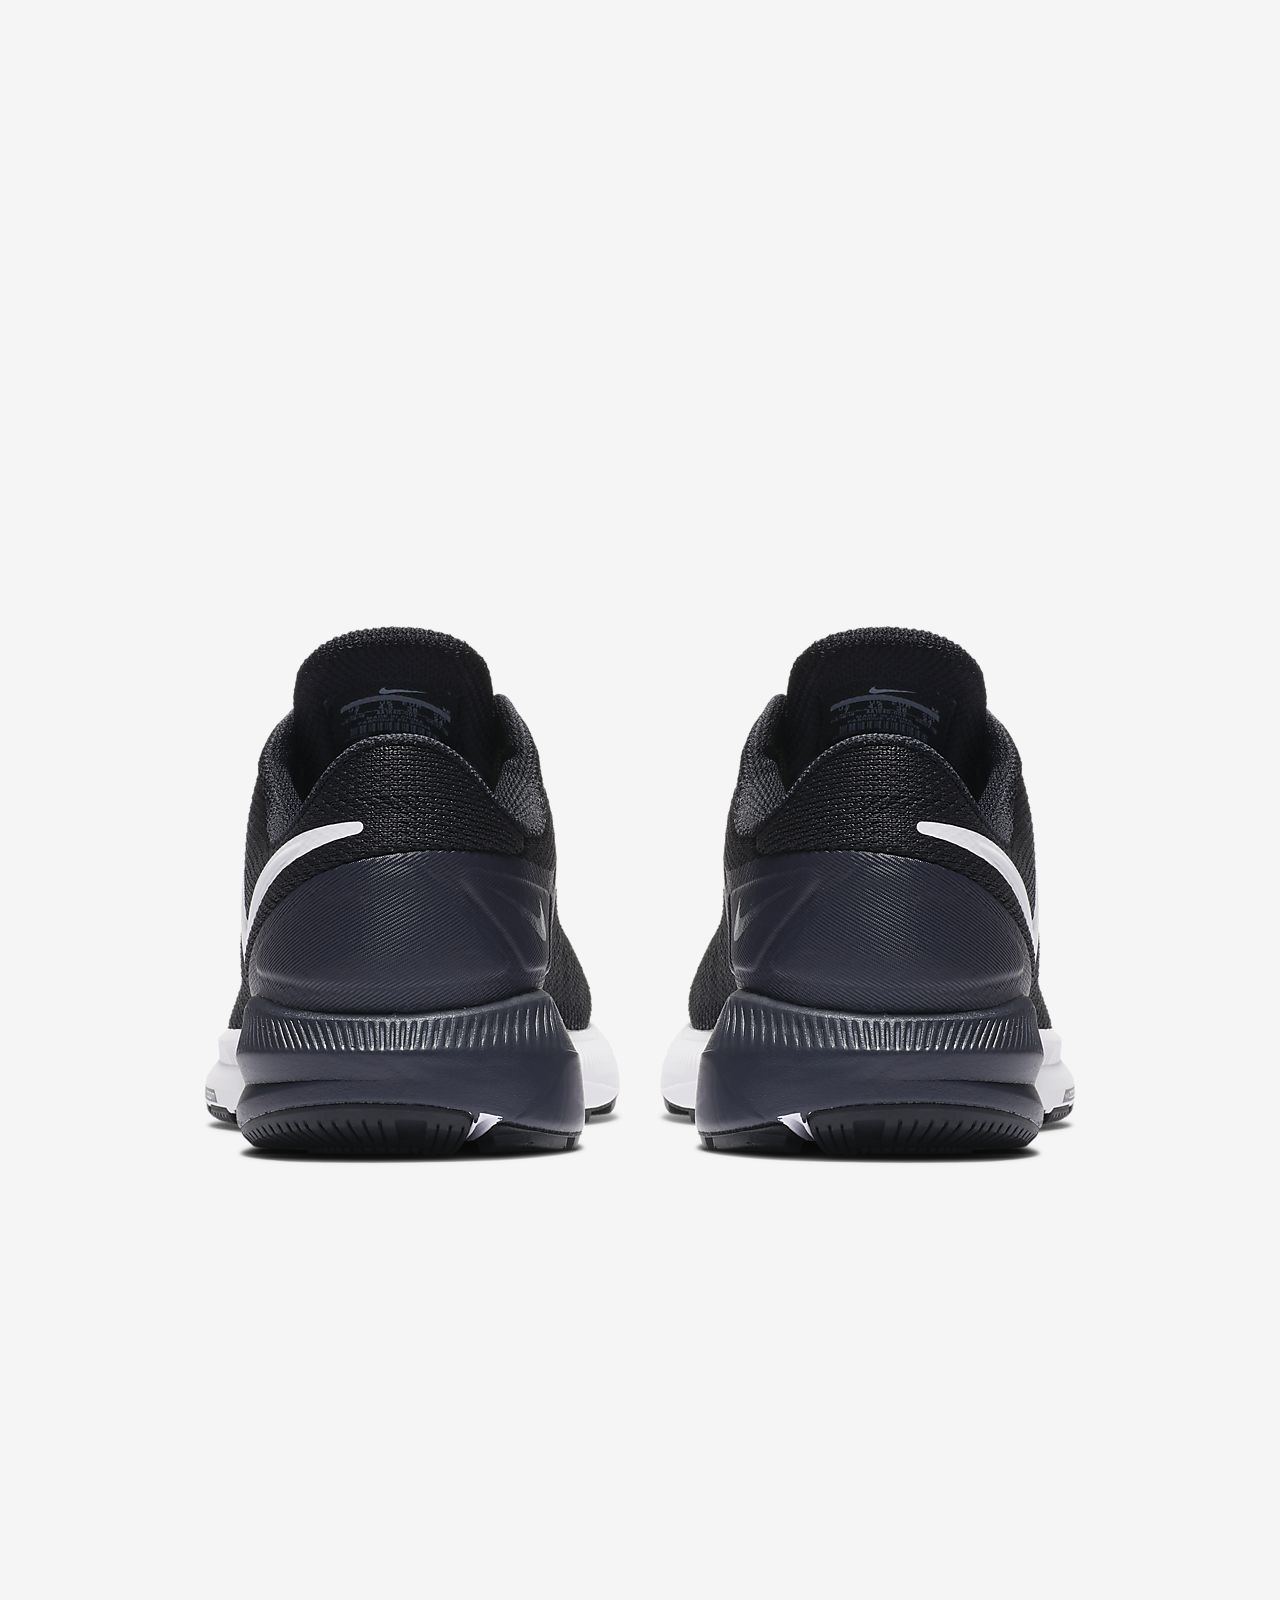 nike air zoom structure 22 women's